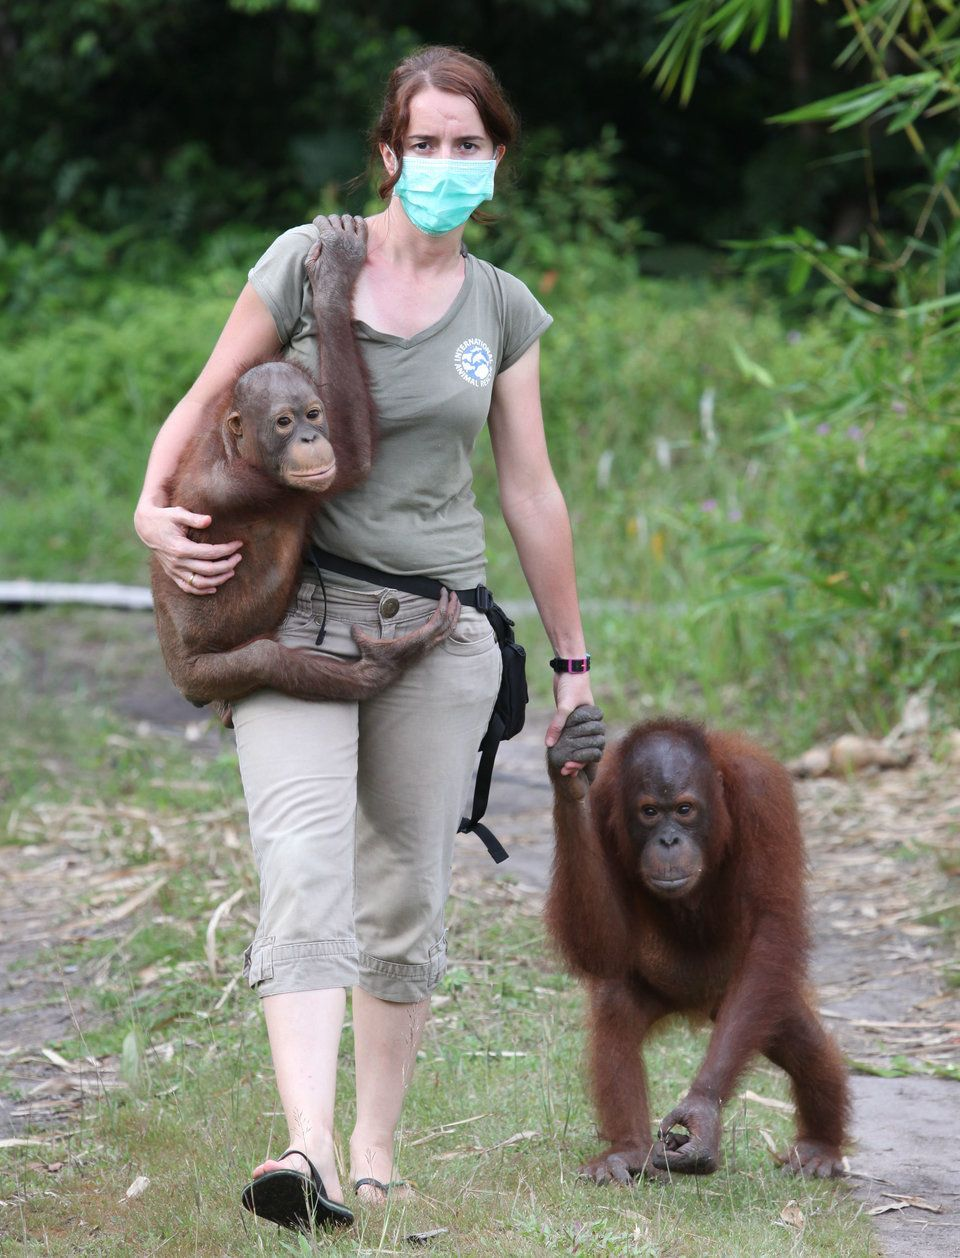 Dr. Karmele Llano Sanchez leads a team in Indonesia that rescues and rehabilitates orangutans, many of...